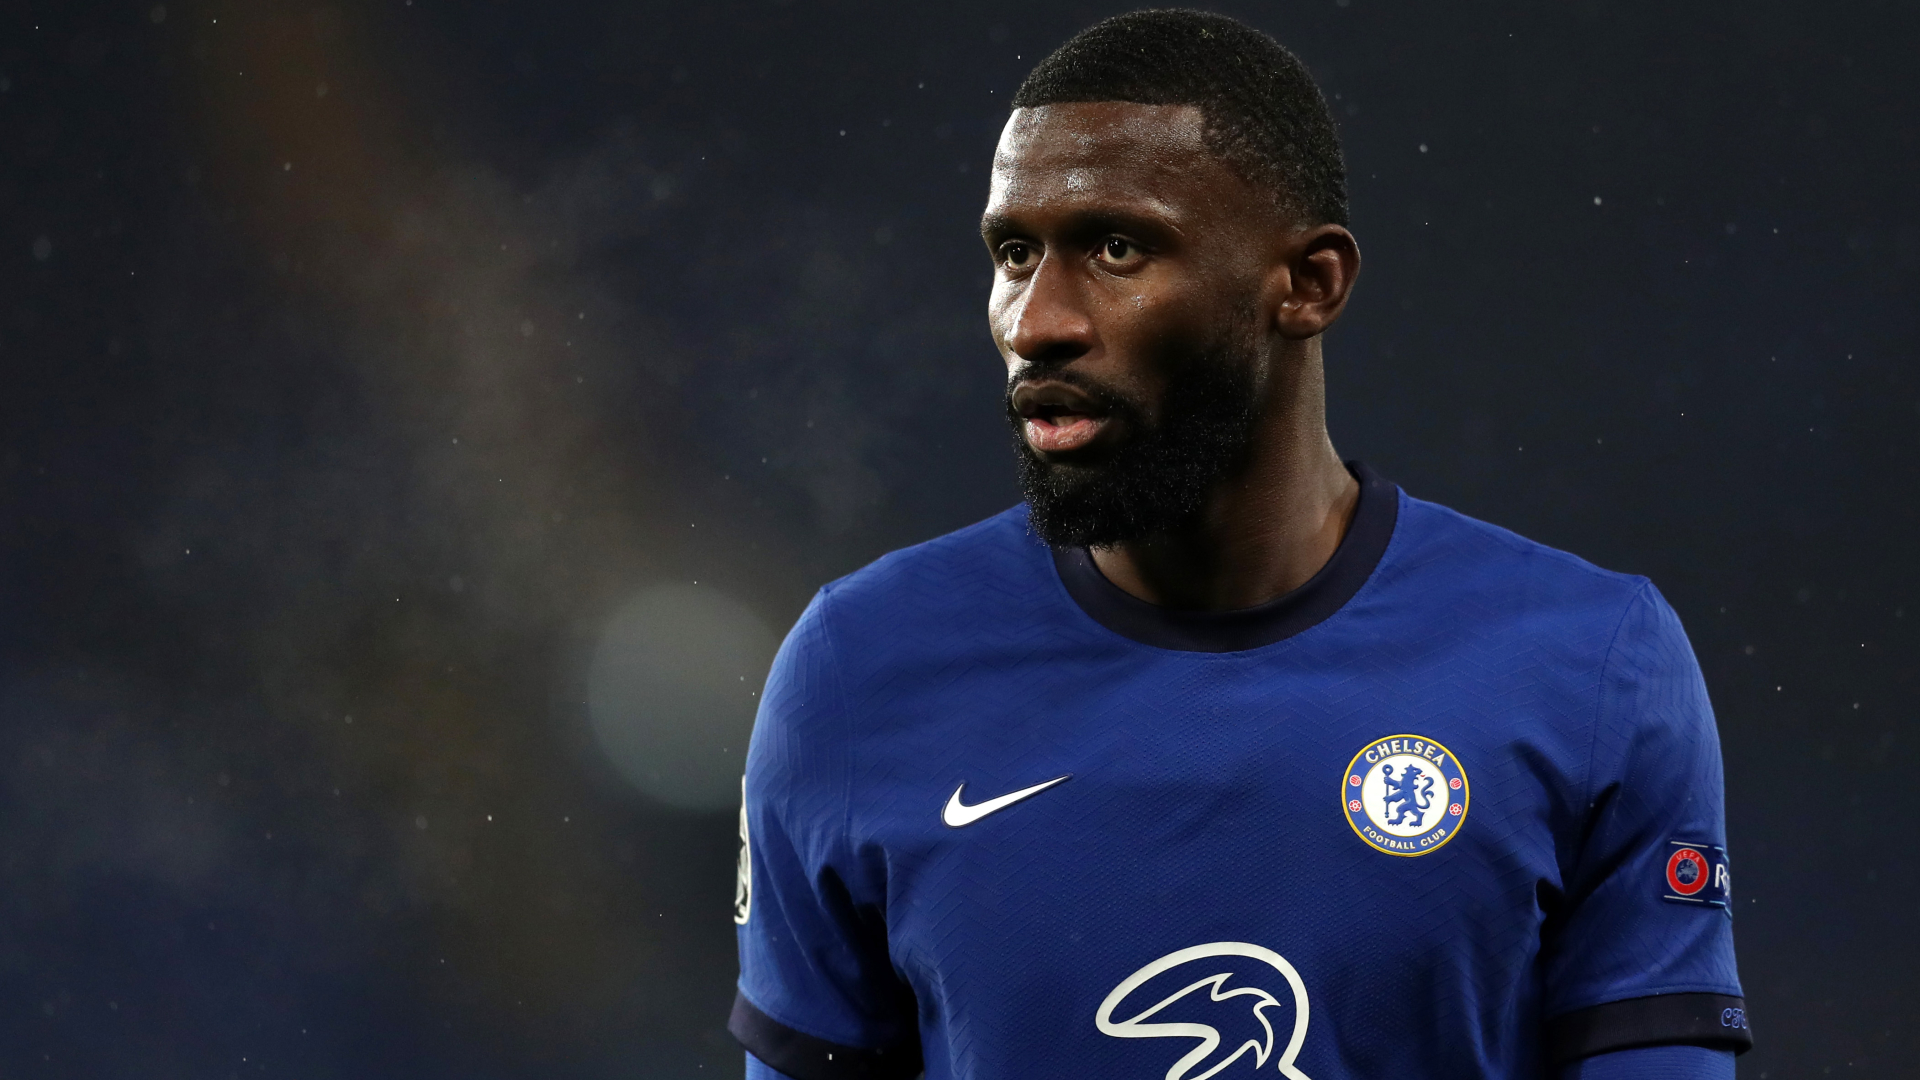 Chelsea's Rudiger alleges social media companies 'do not care' after becoming victim of racist abuse